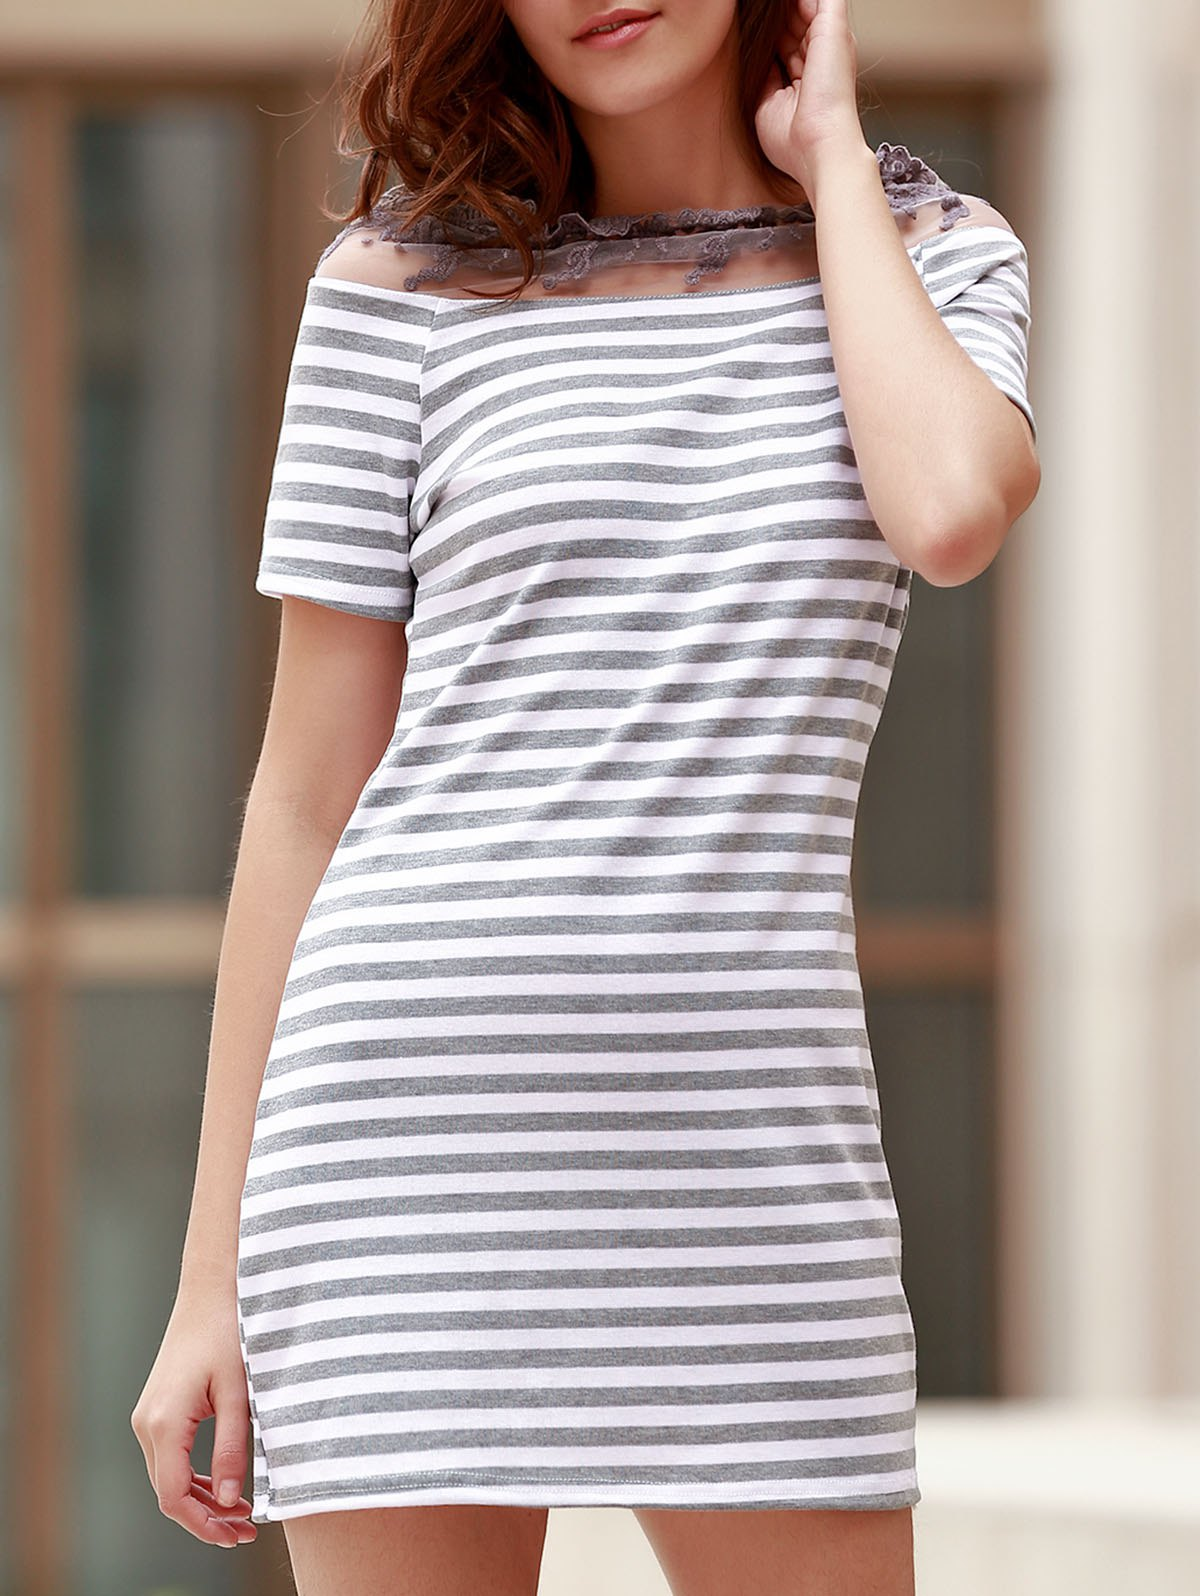 Stylish Short Sleeve Striped Lace Floral Spliced See-Through Women's Dress - S GRAY